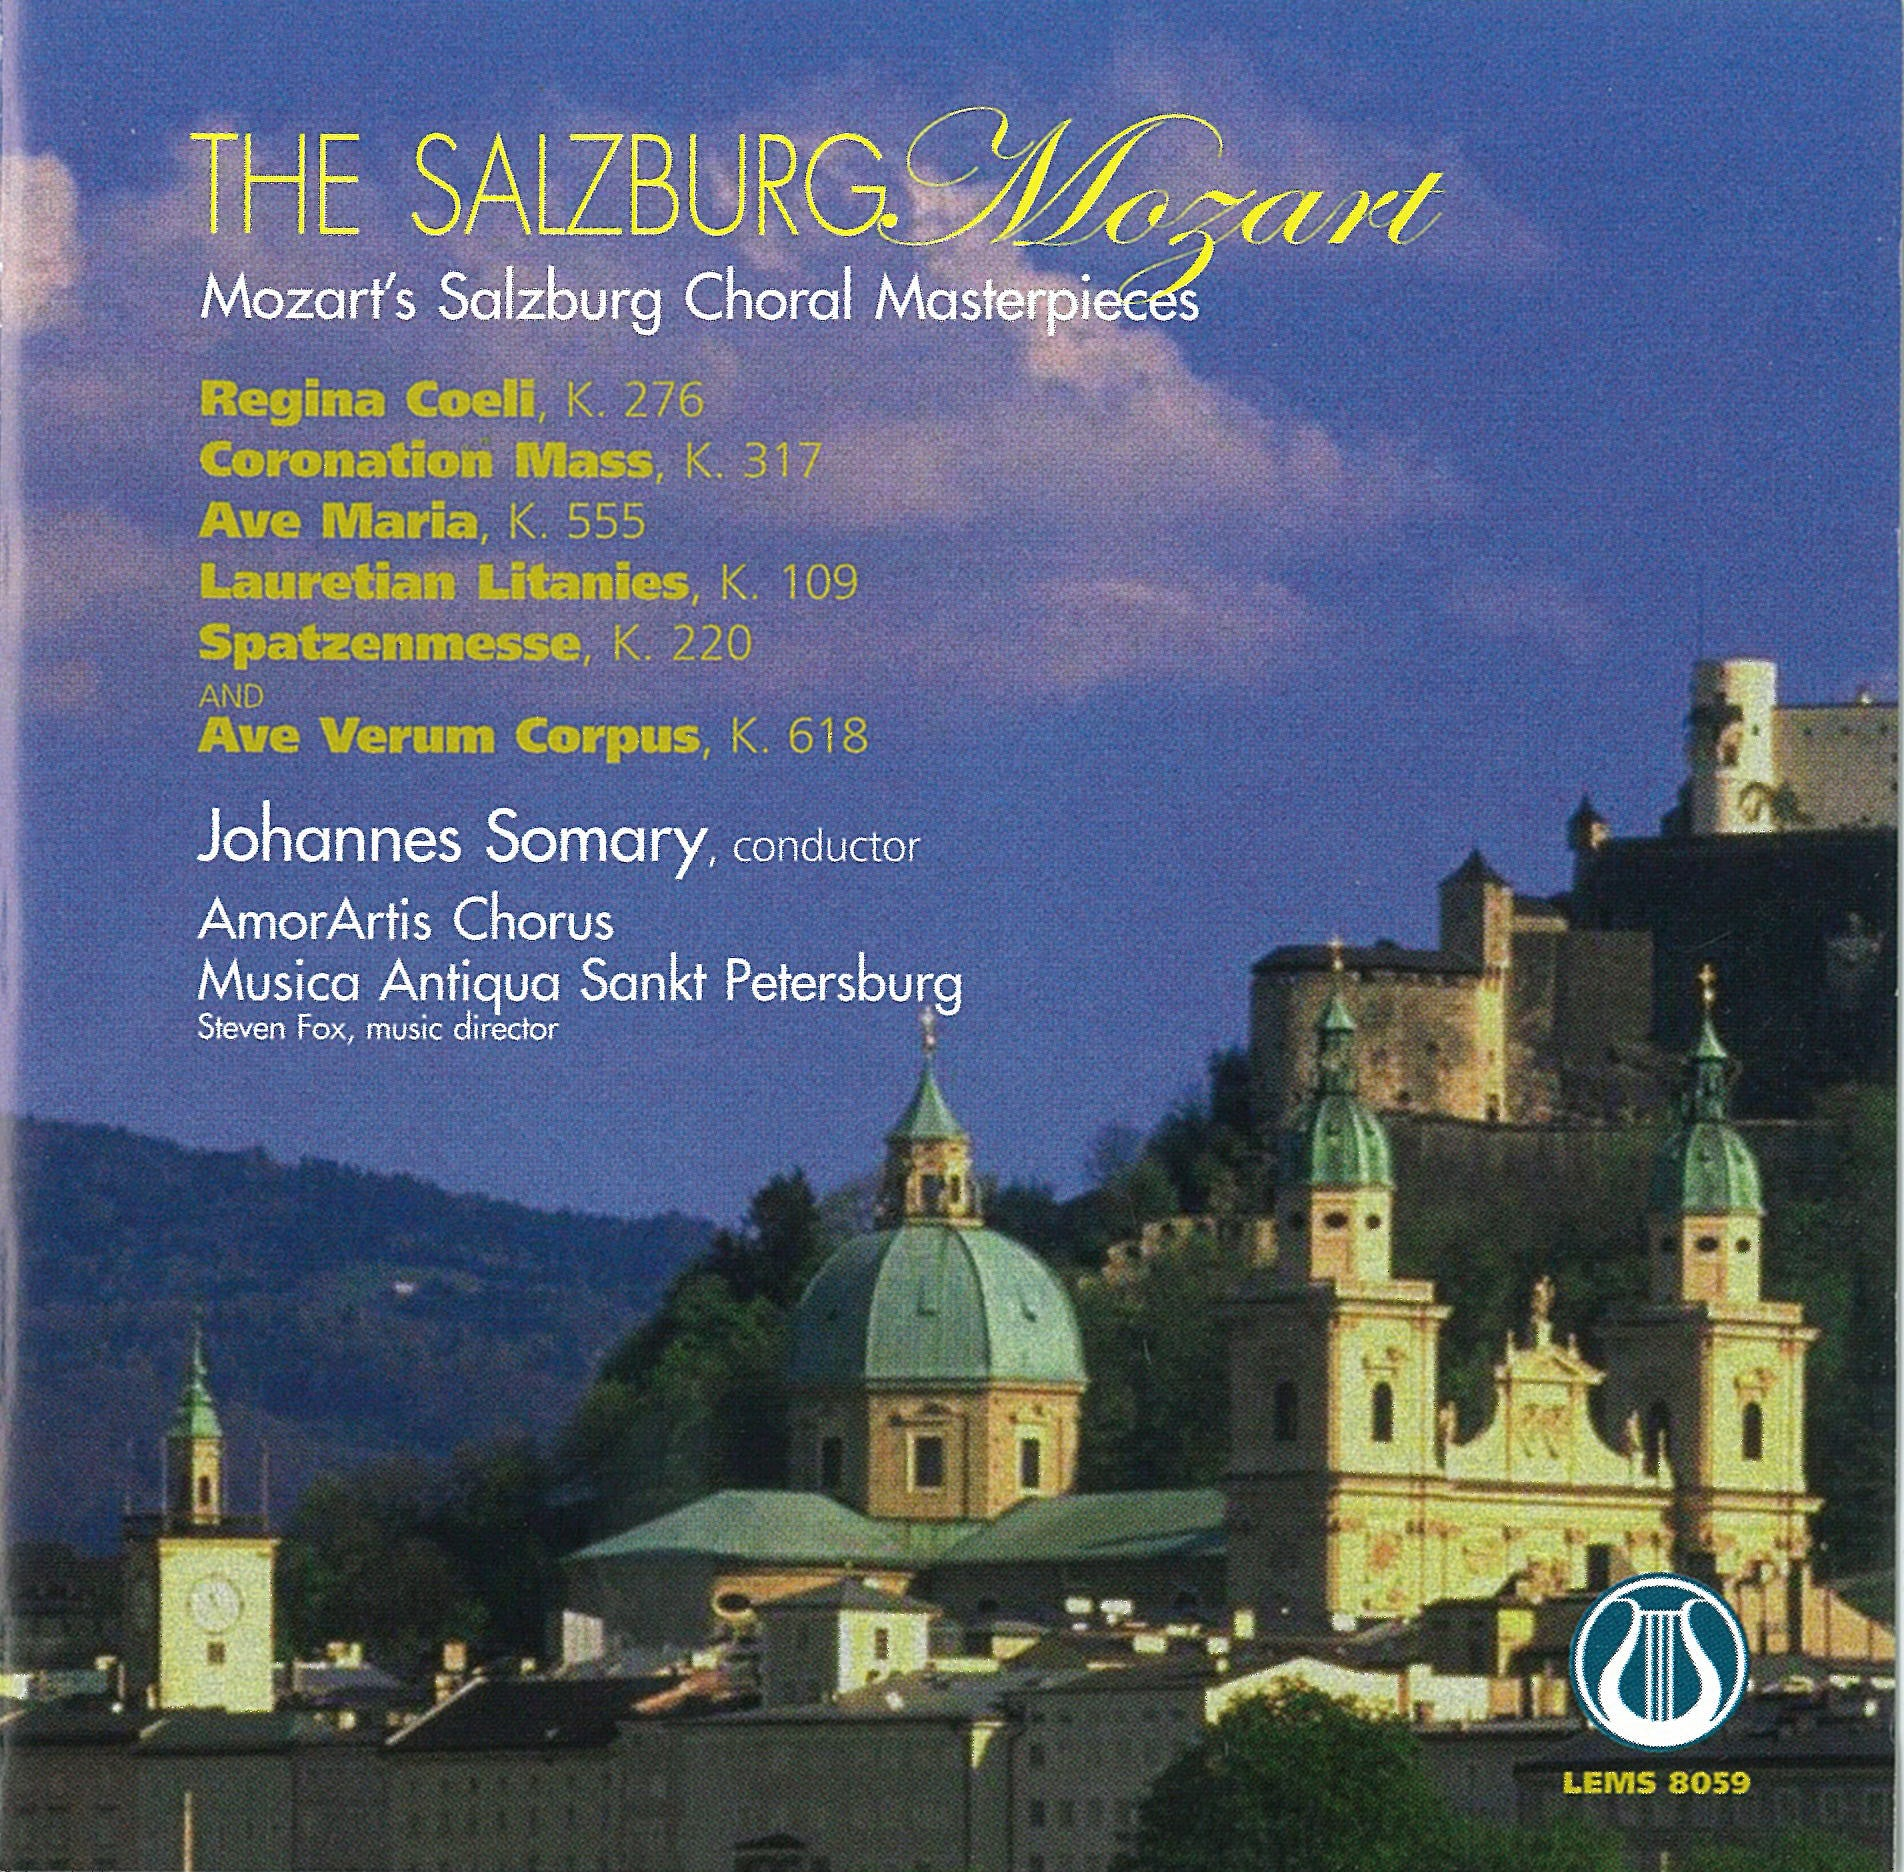 The Salzburg Mozart - Mozart's Salzburg Choral Masterpieces DOWNLOAD ONLY  LEMS-8059